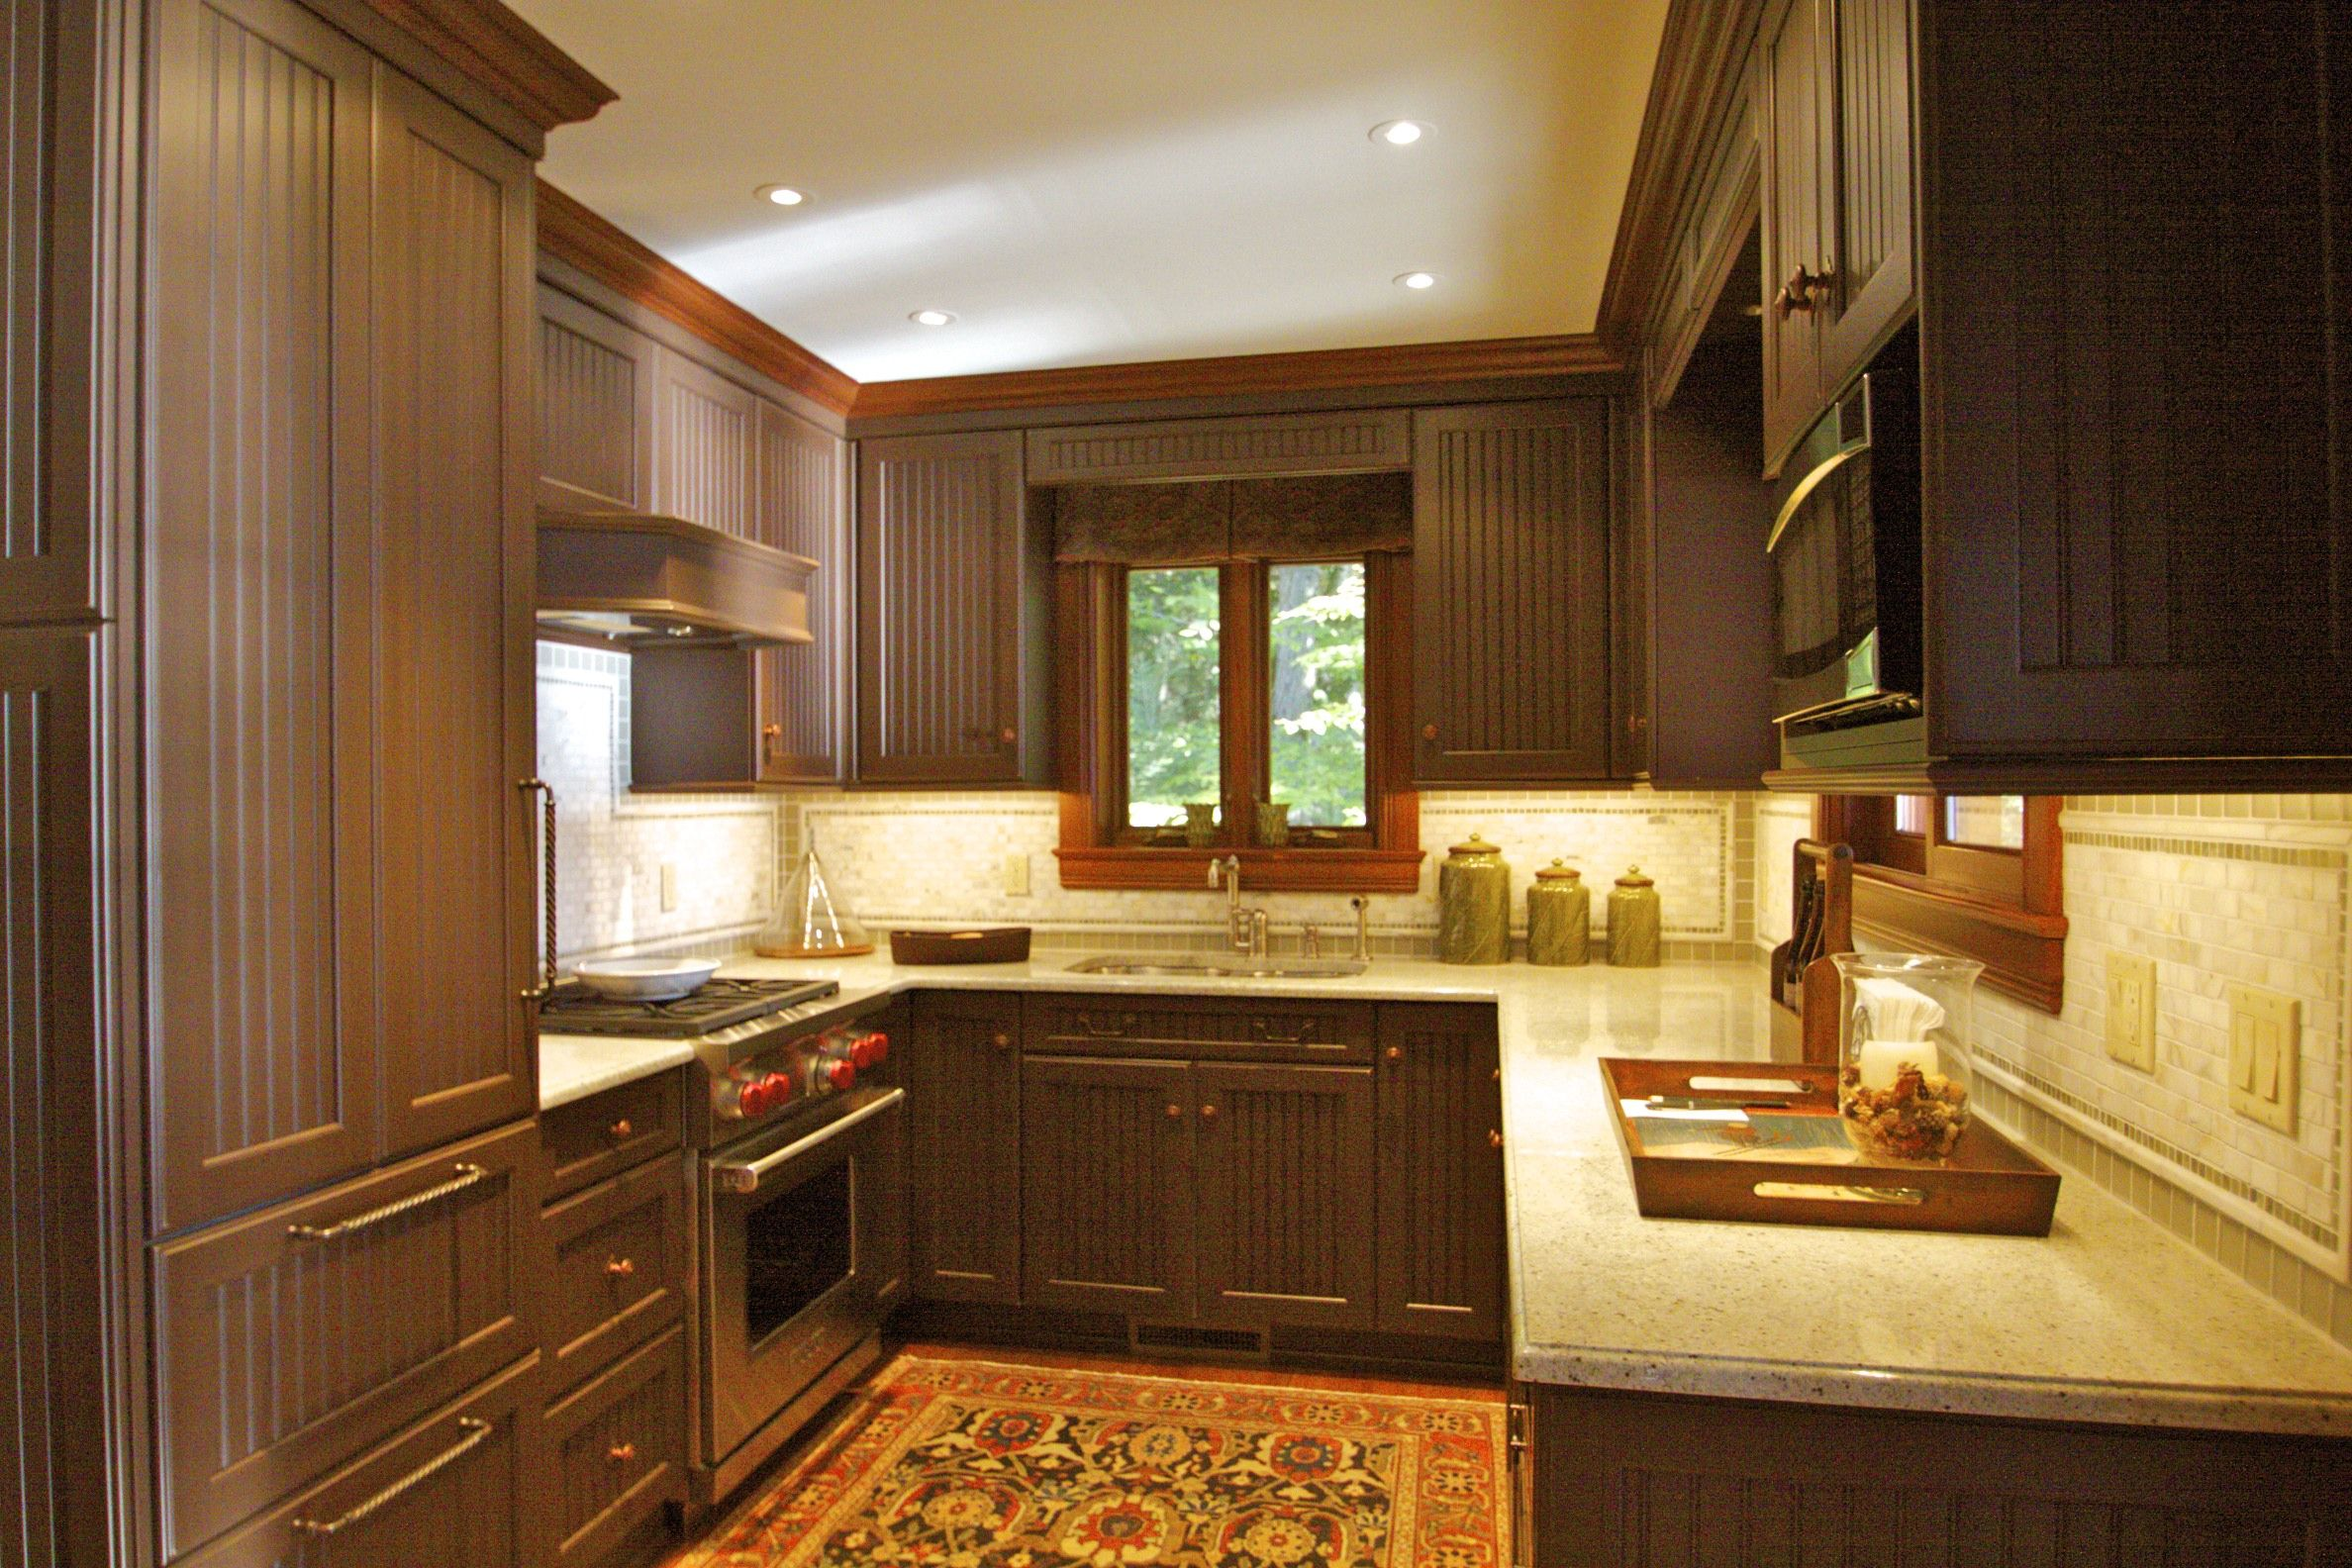 Best Places To Buy Kitchen Cabinets Saving This For New Kitchen Cabinet Paint Matte Chocolate